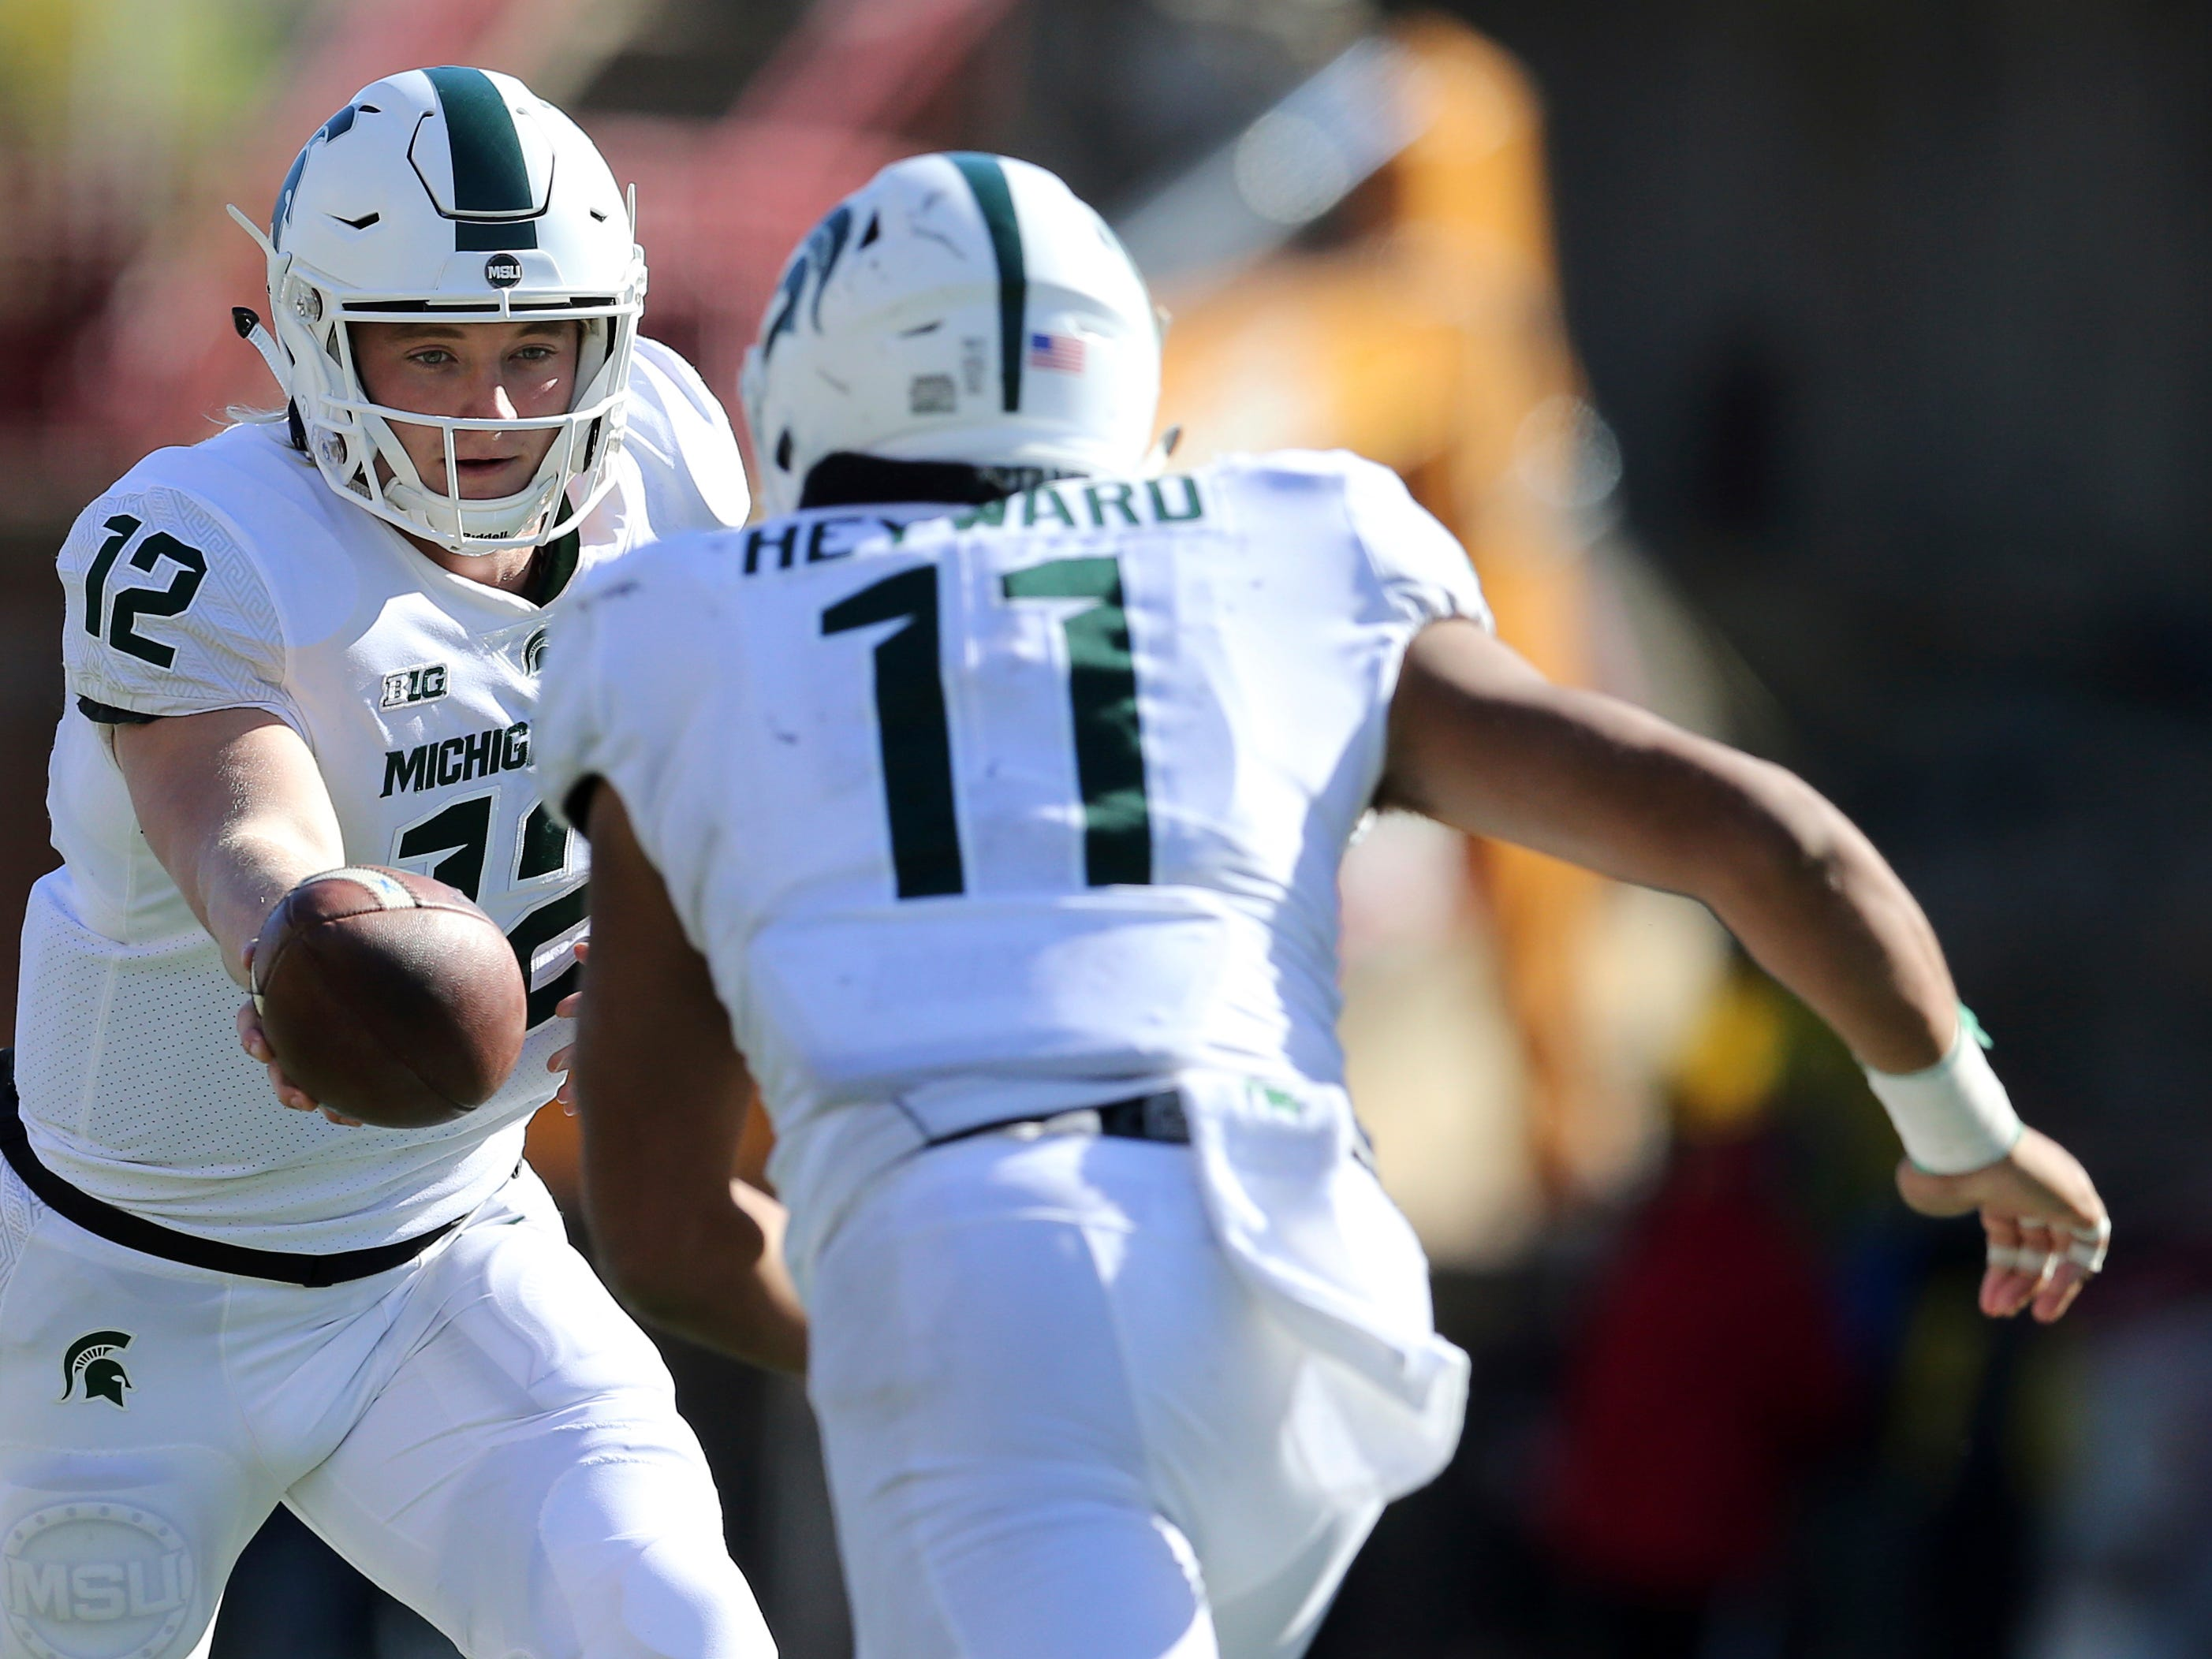 Michigan State quarterback Rocky Lombardi (12) hands off to running back Connor Heyward (11) in the second half of an NCAA college football game, Saturday, Nov. 3, 2018, in College Park, Md. Heyward scored on the play and Michigan State defeated Maryland, 24-3.